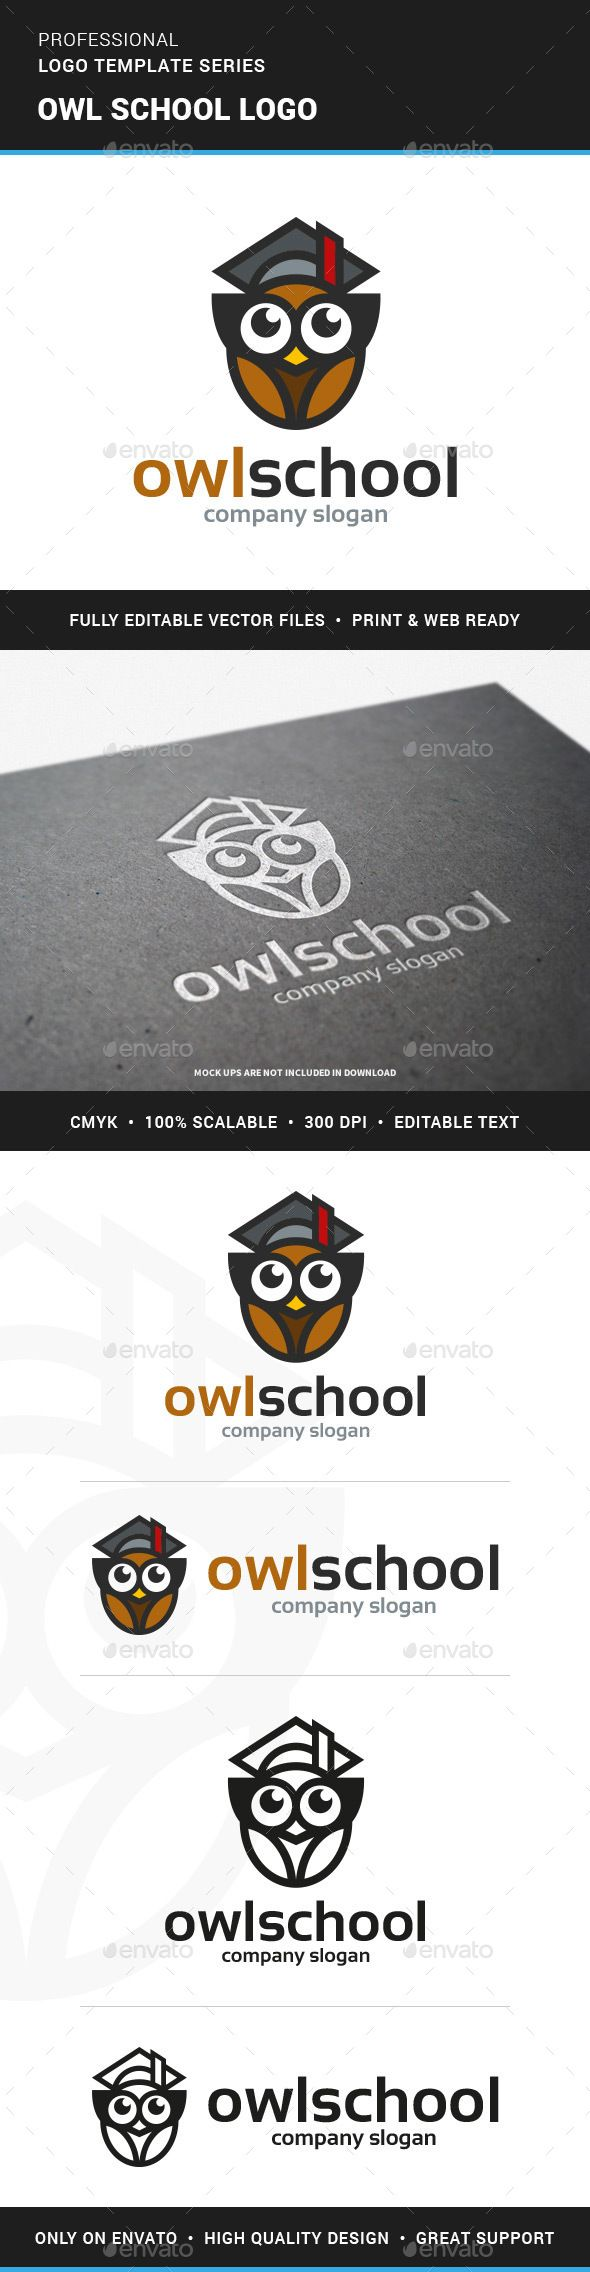 Owl School Logo Template #hat #education  • Download here → https://graphicriver.net/item/owl-school-logo-template/13100272?ref=pxcr